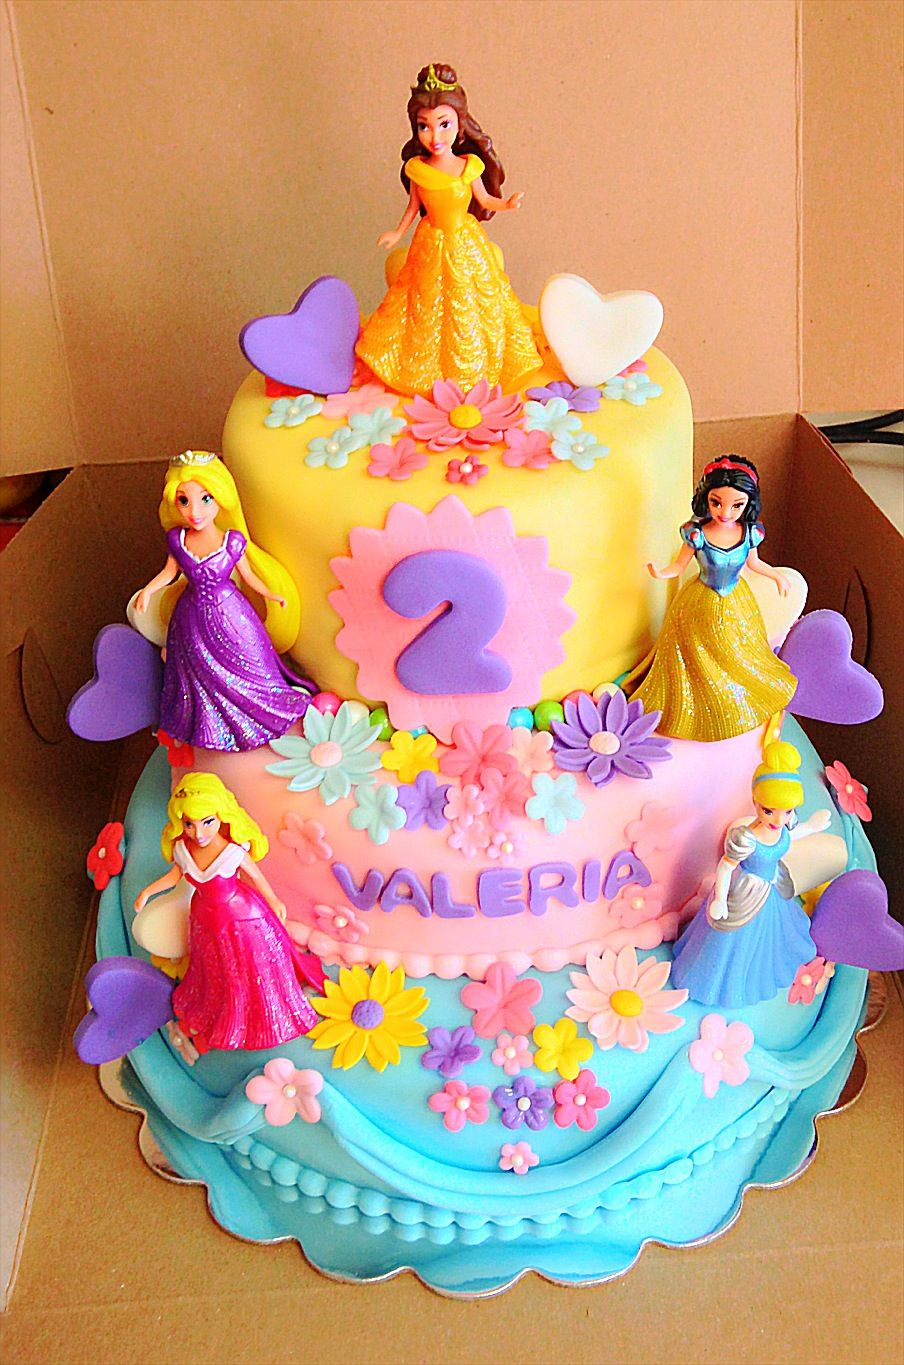 Valeria S Disney Princess Cake Icing Sugar Dust Princess